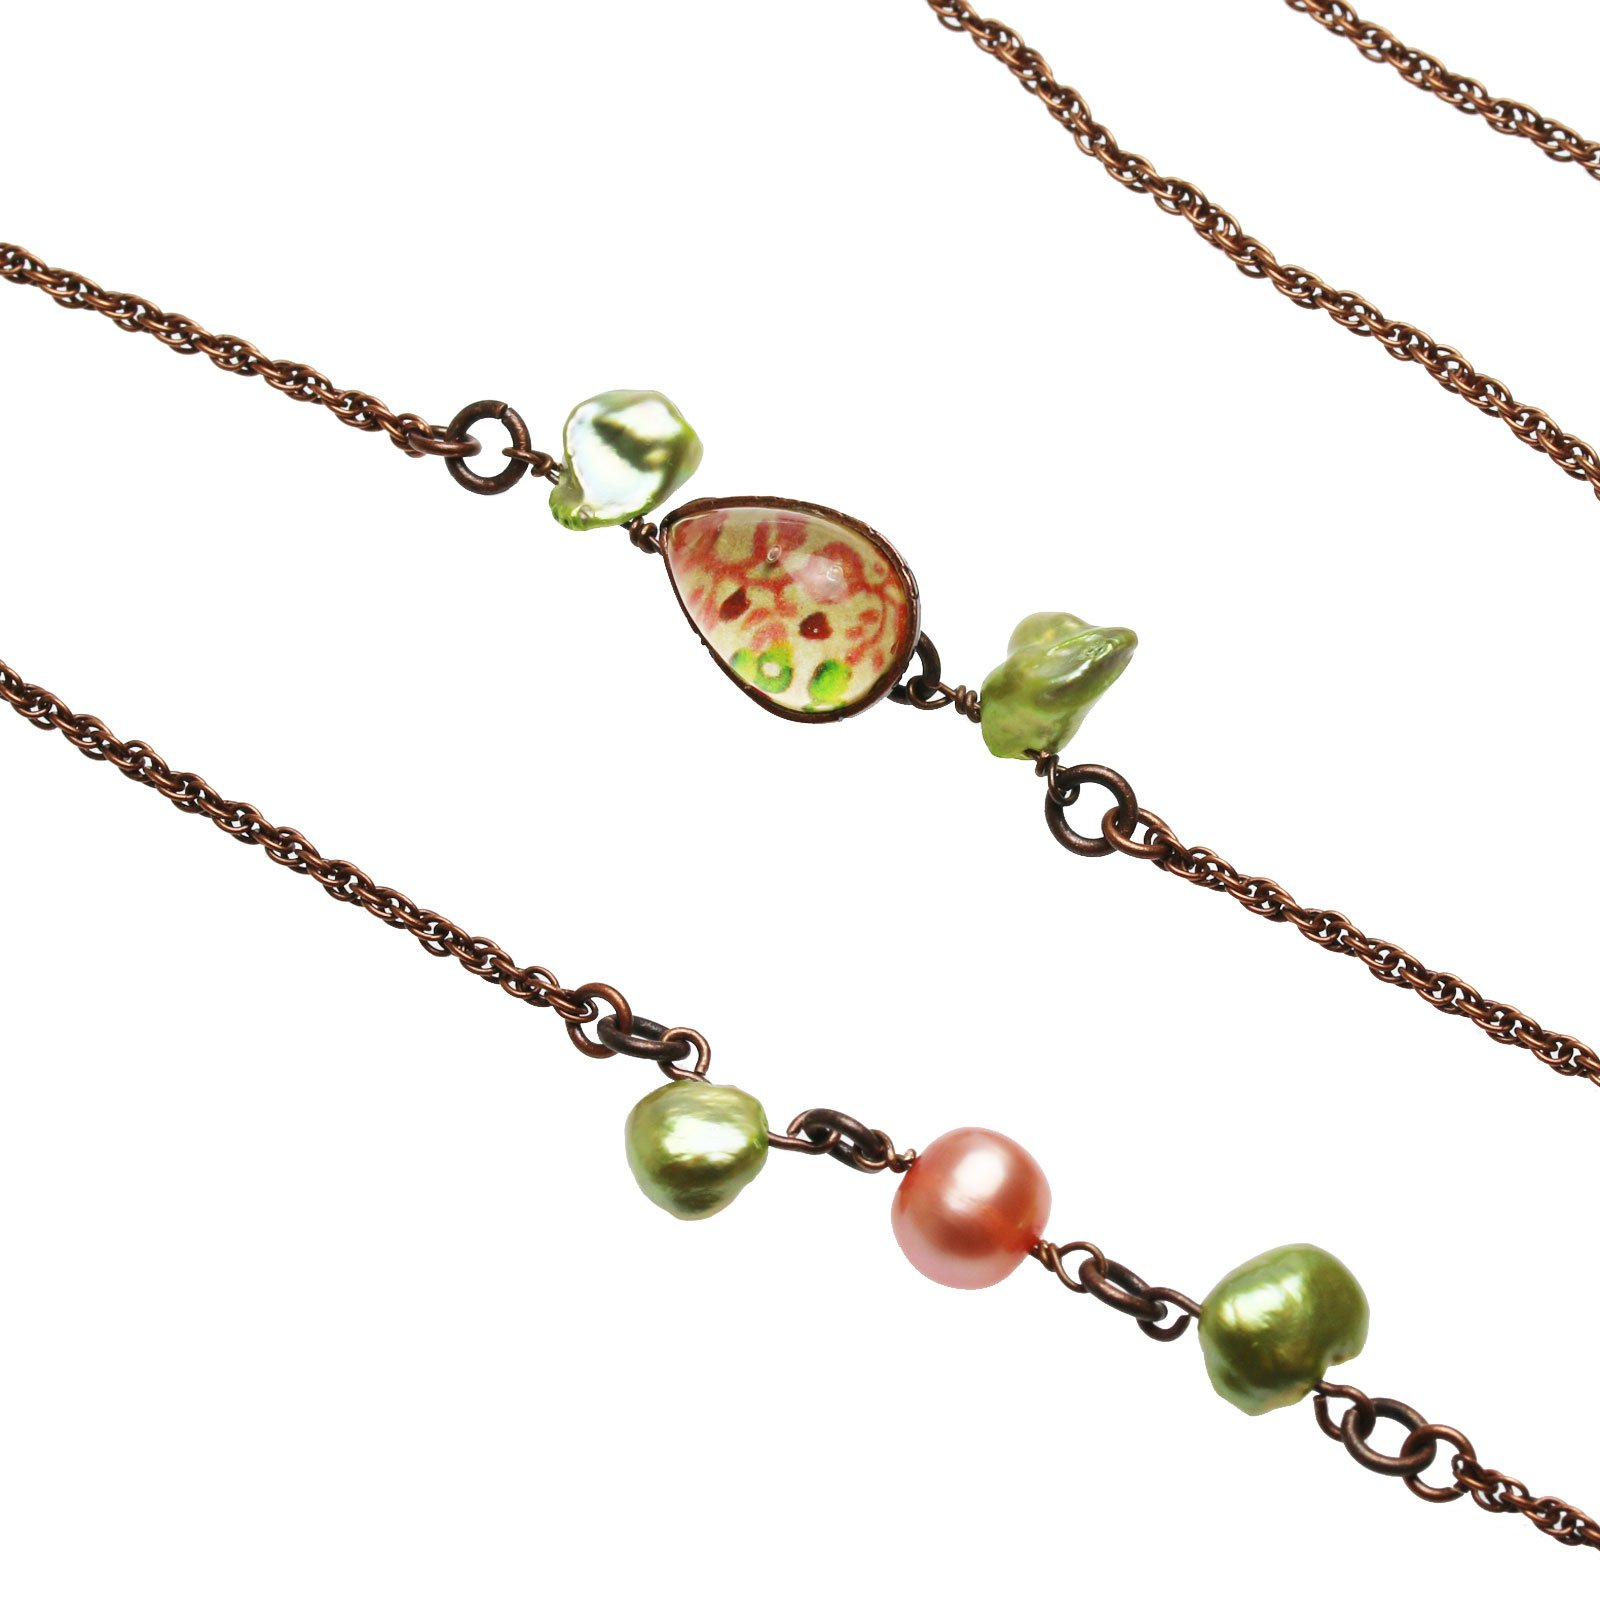 Tamarusan Rosic Beige Glasses Chain Freshwater Pearl Gift Antique Finished